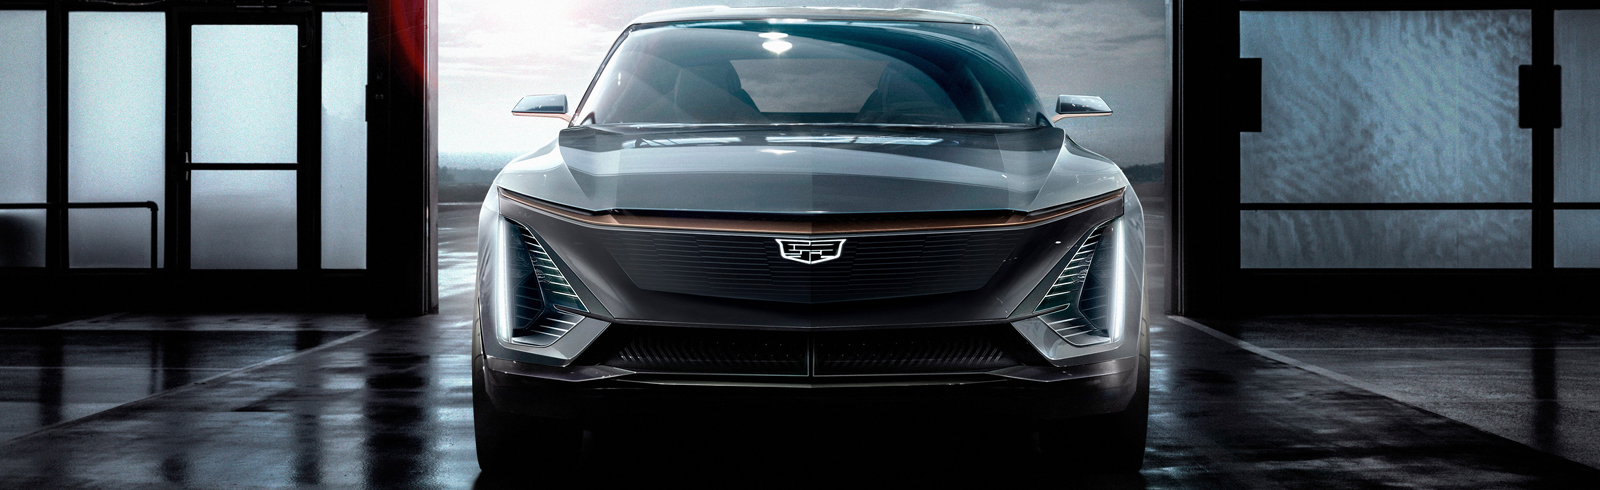 Cadillac unveils concept photos of its first electric vehicle, the brand will lead GM's next generation of EVs